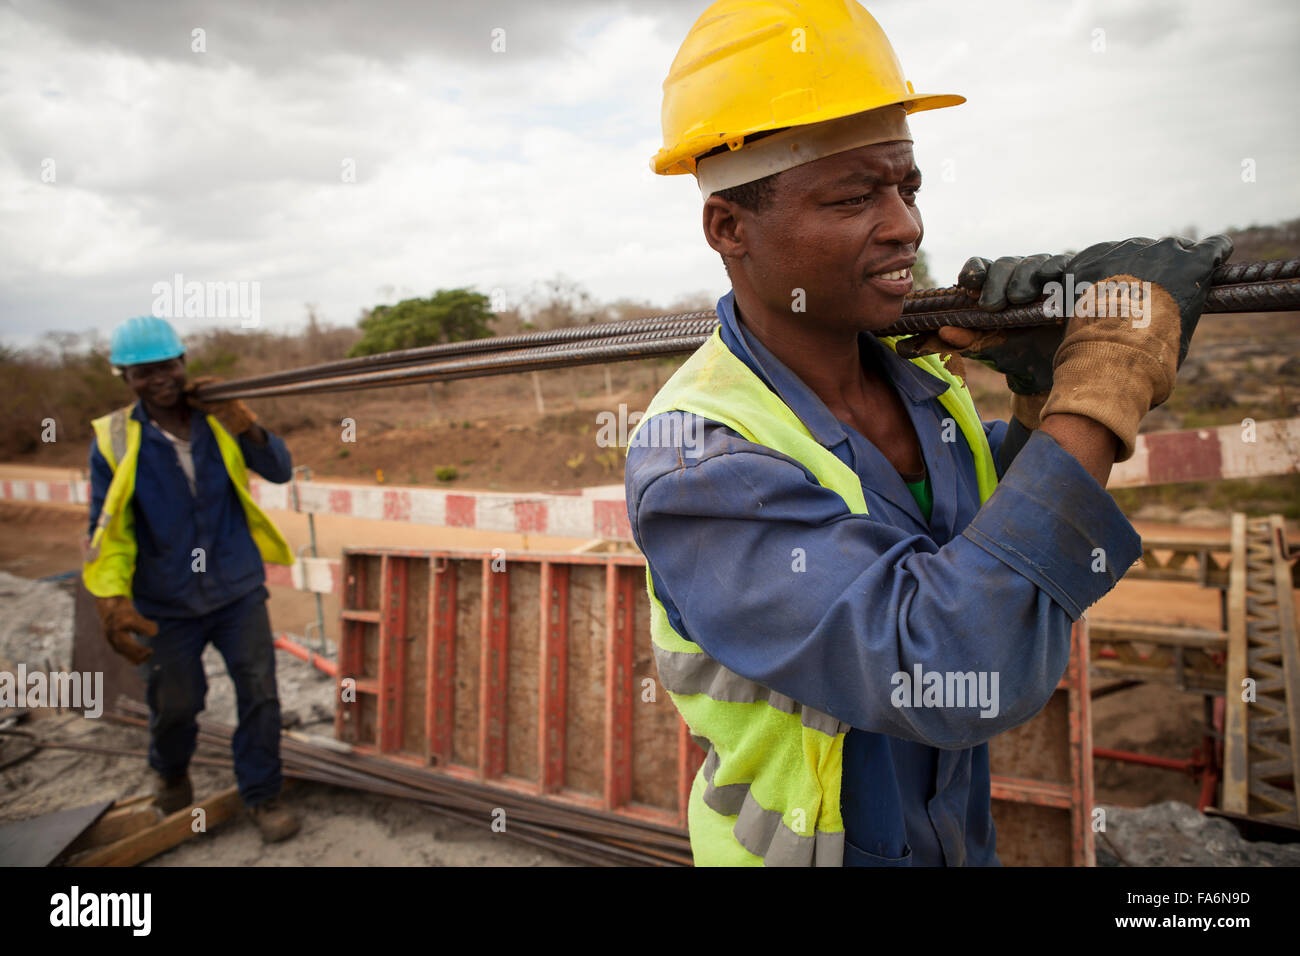 Construction workers rehabilitate an aging bridge along the Namialo to Rio Lurio Road in Northern Mozambique, SE - Stock Image